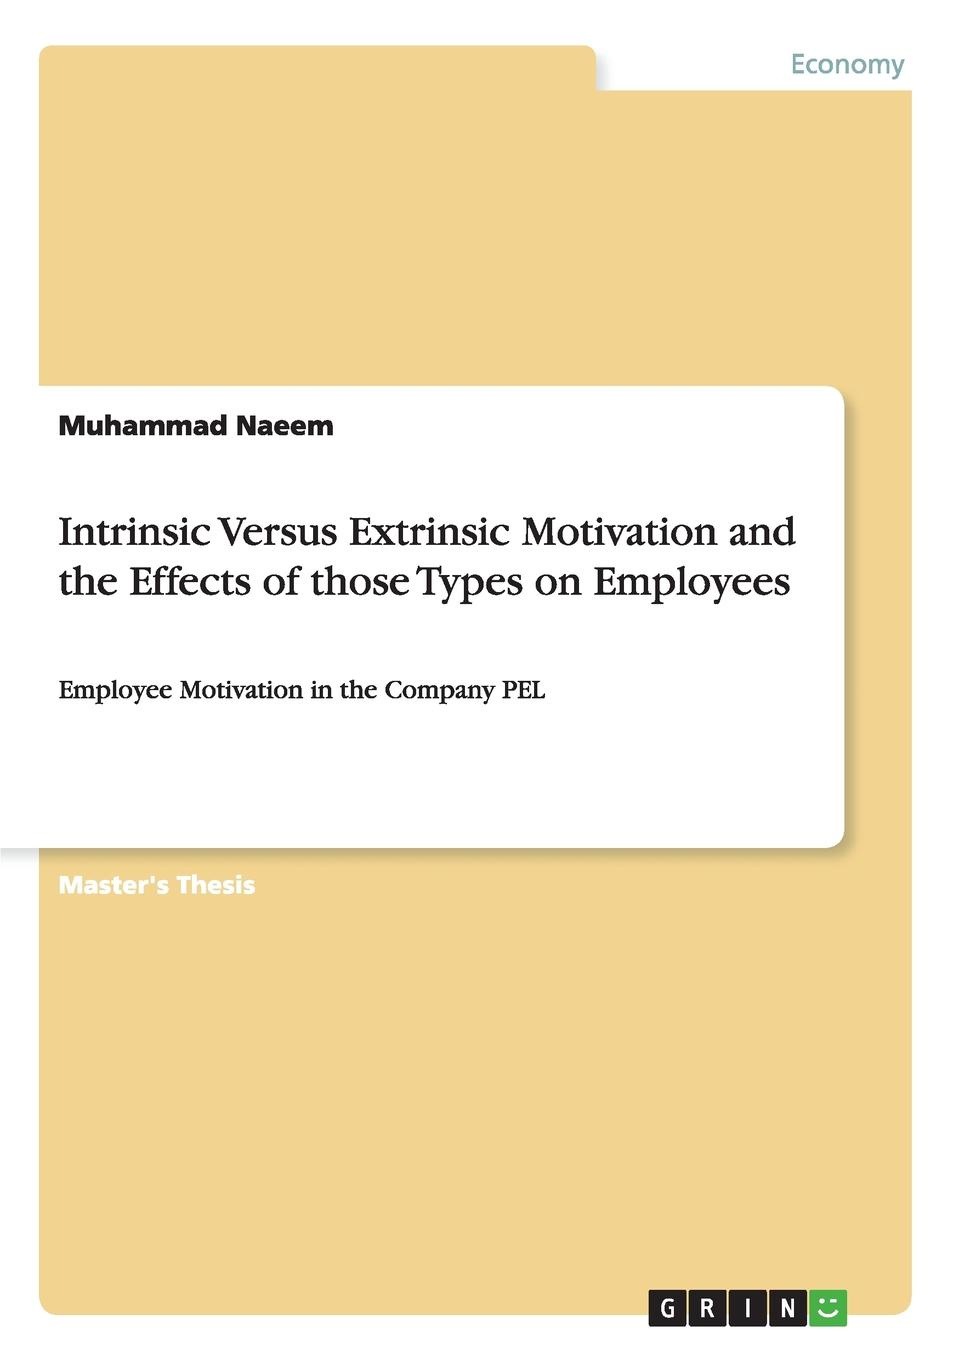 Muhammad Naeem Intrinsic Versus Extrinsic Motivation and the Effects of those Types on Employees kofan lee impacts of family styles and adventure program on intrinsic motivation